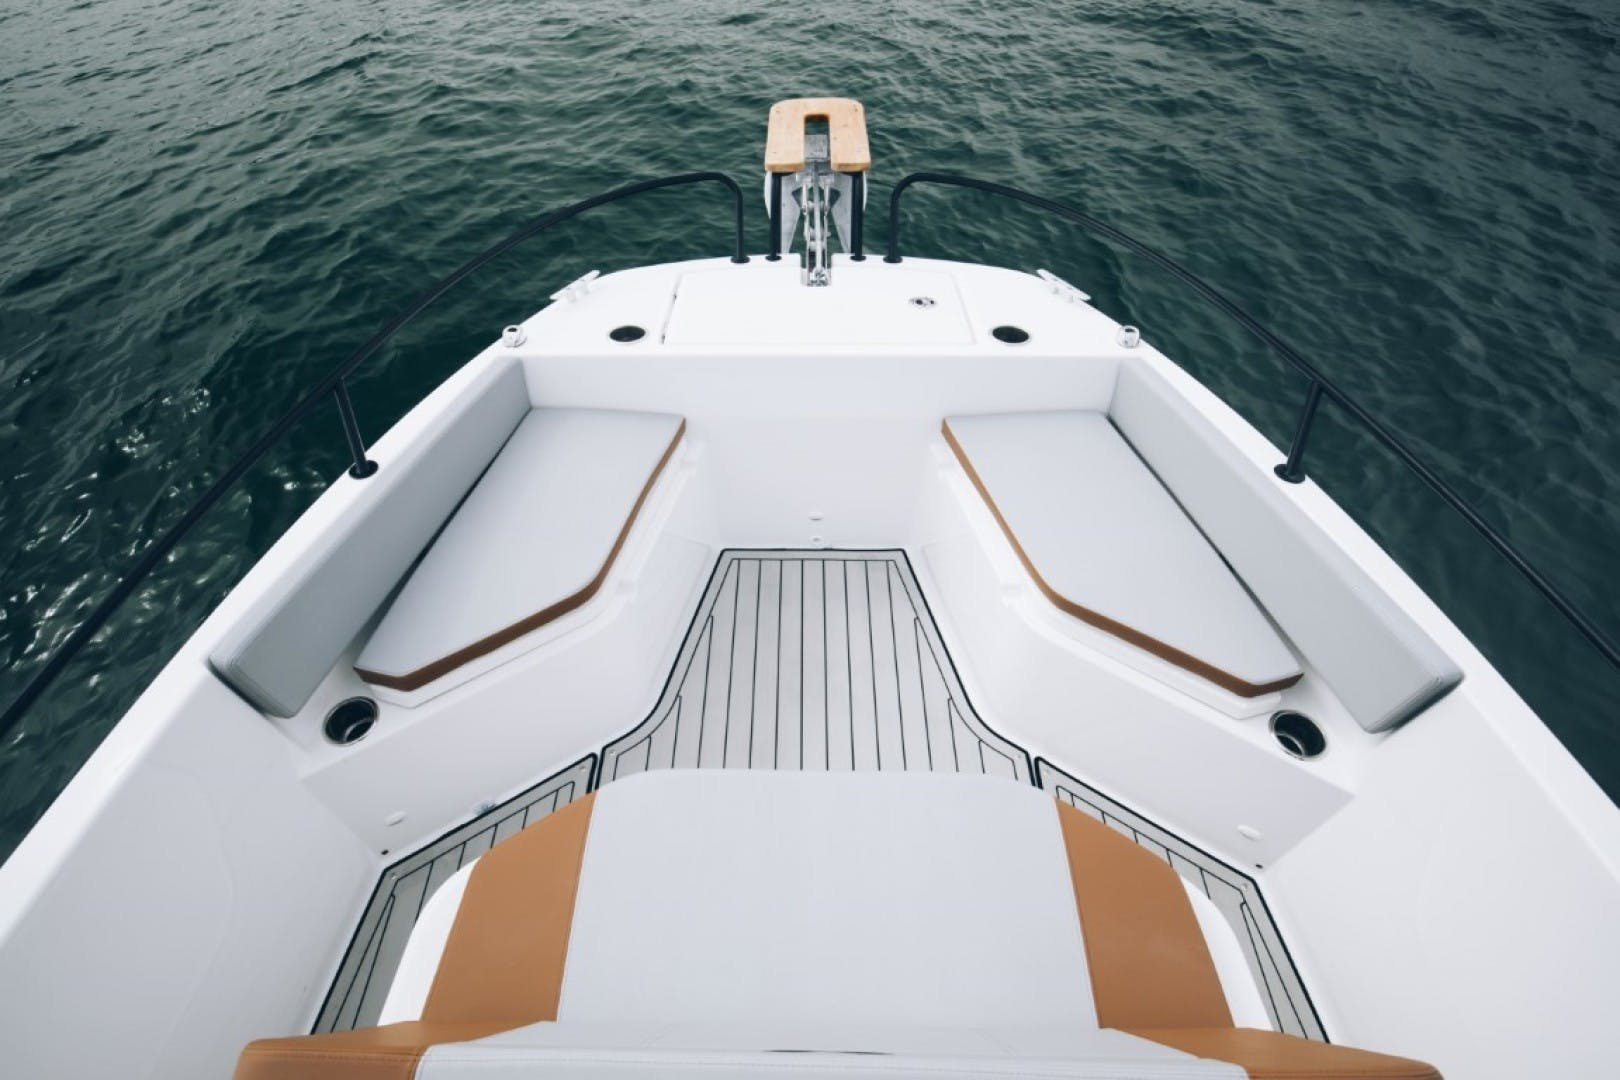 2021 Beneteau 21' Flyer 7 Spacedeck  | Picture 1 of 13